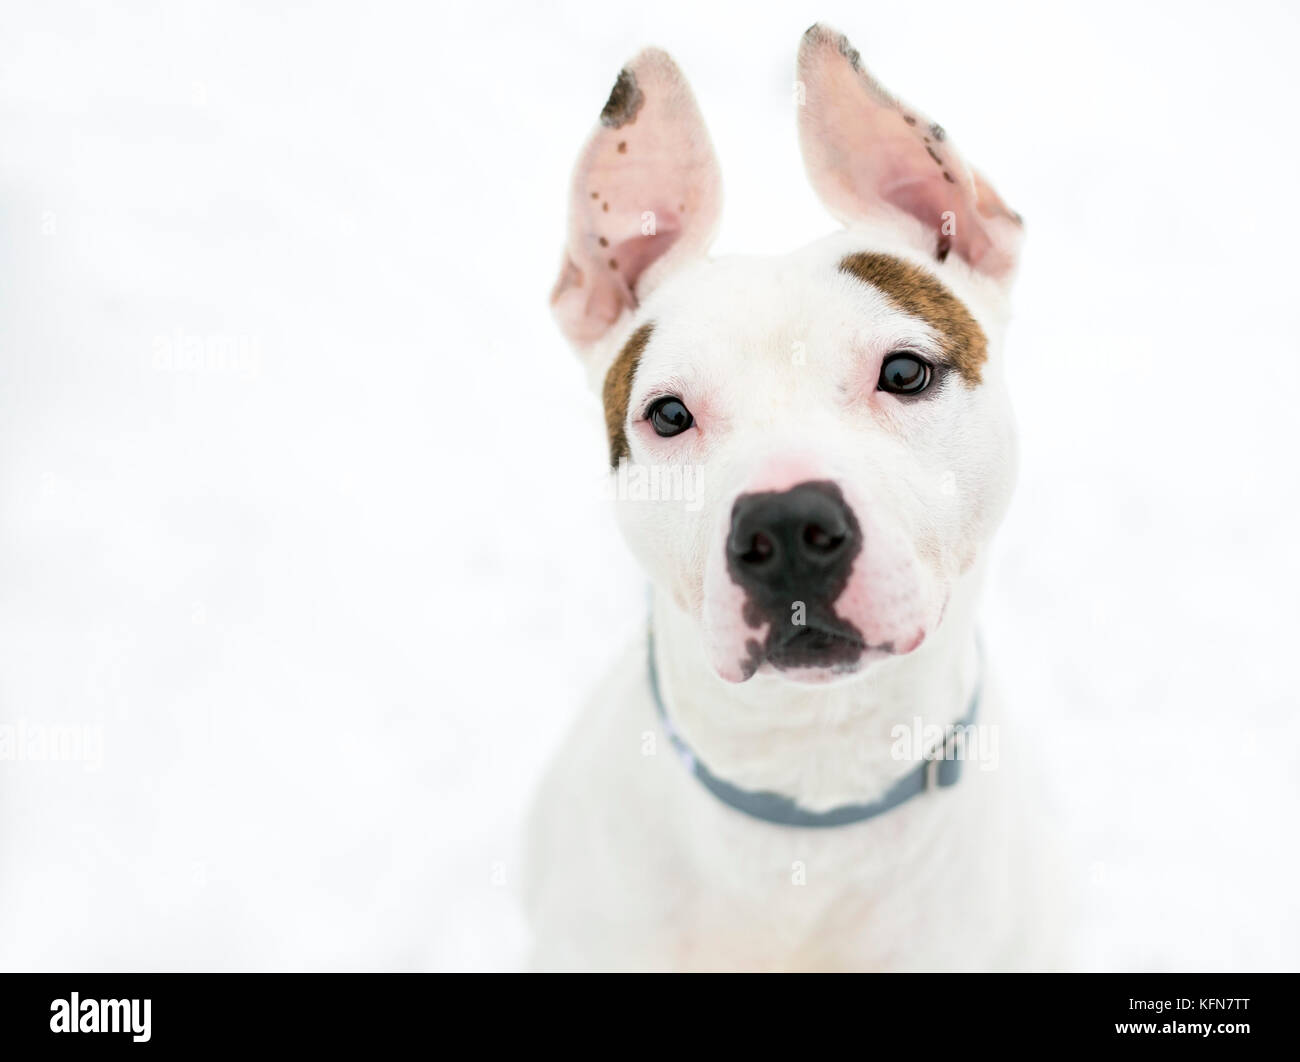 A cute Pit Bull Terrier mixed breed dog with large ears outdoors in the snow - Stock Image